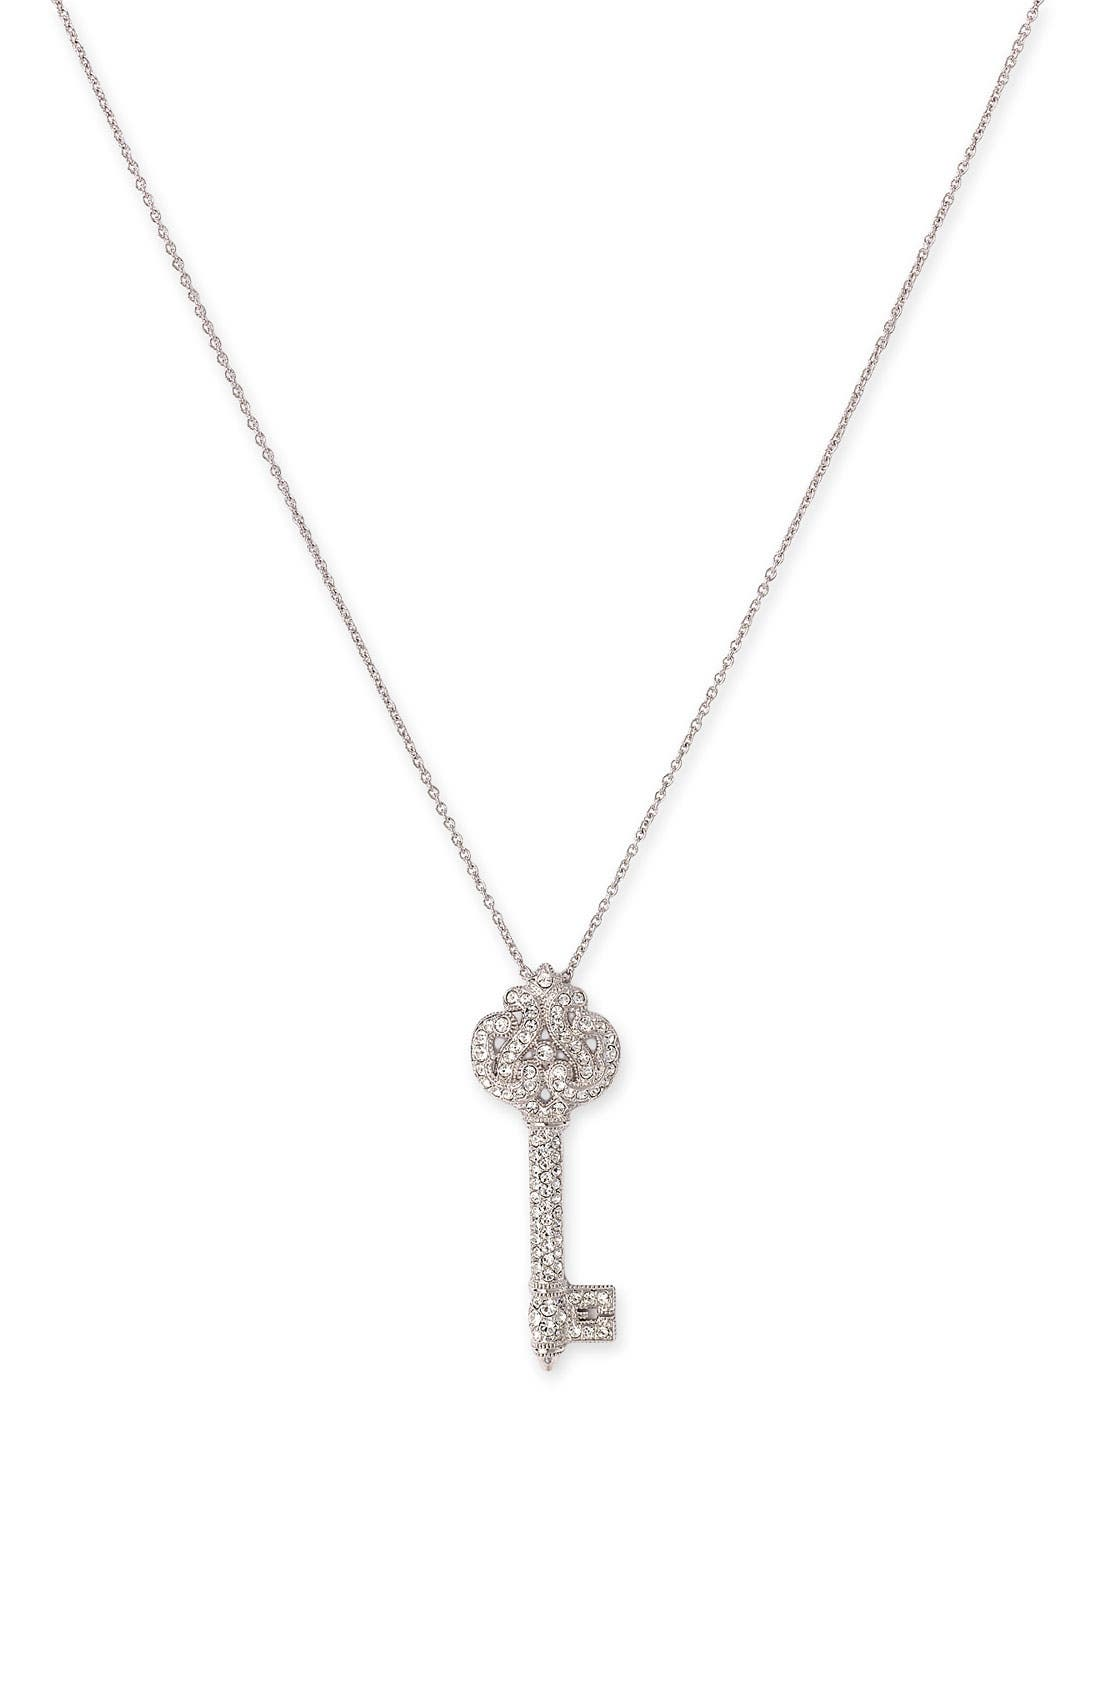 Alternate Image 1 Selected - Nadri 'Cartouche' Key Pendant Necklace